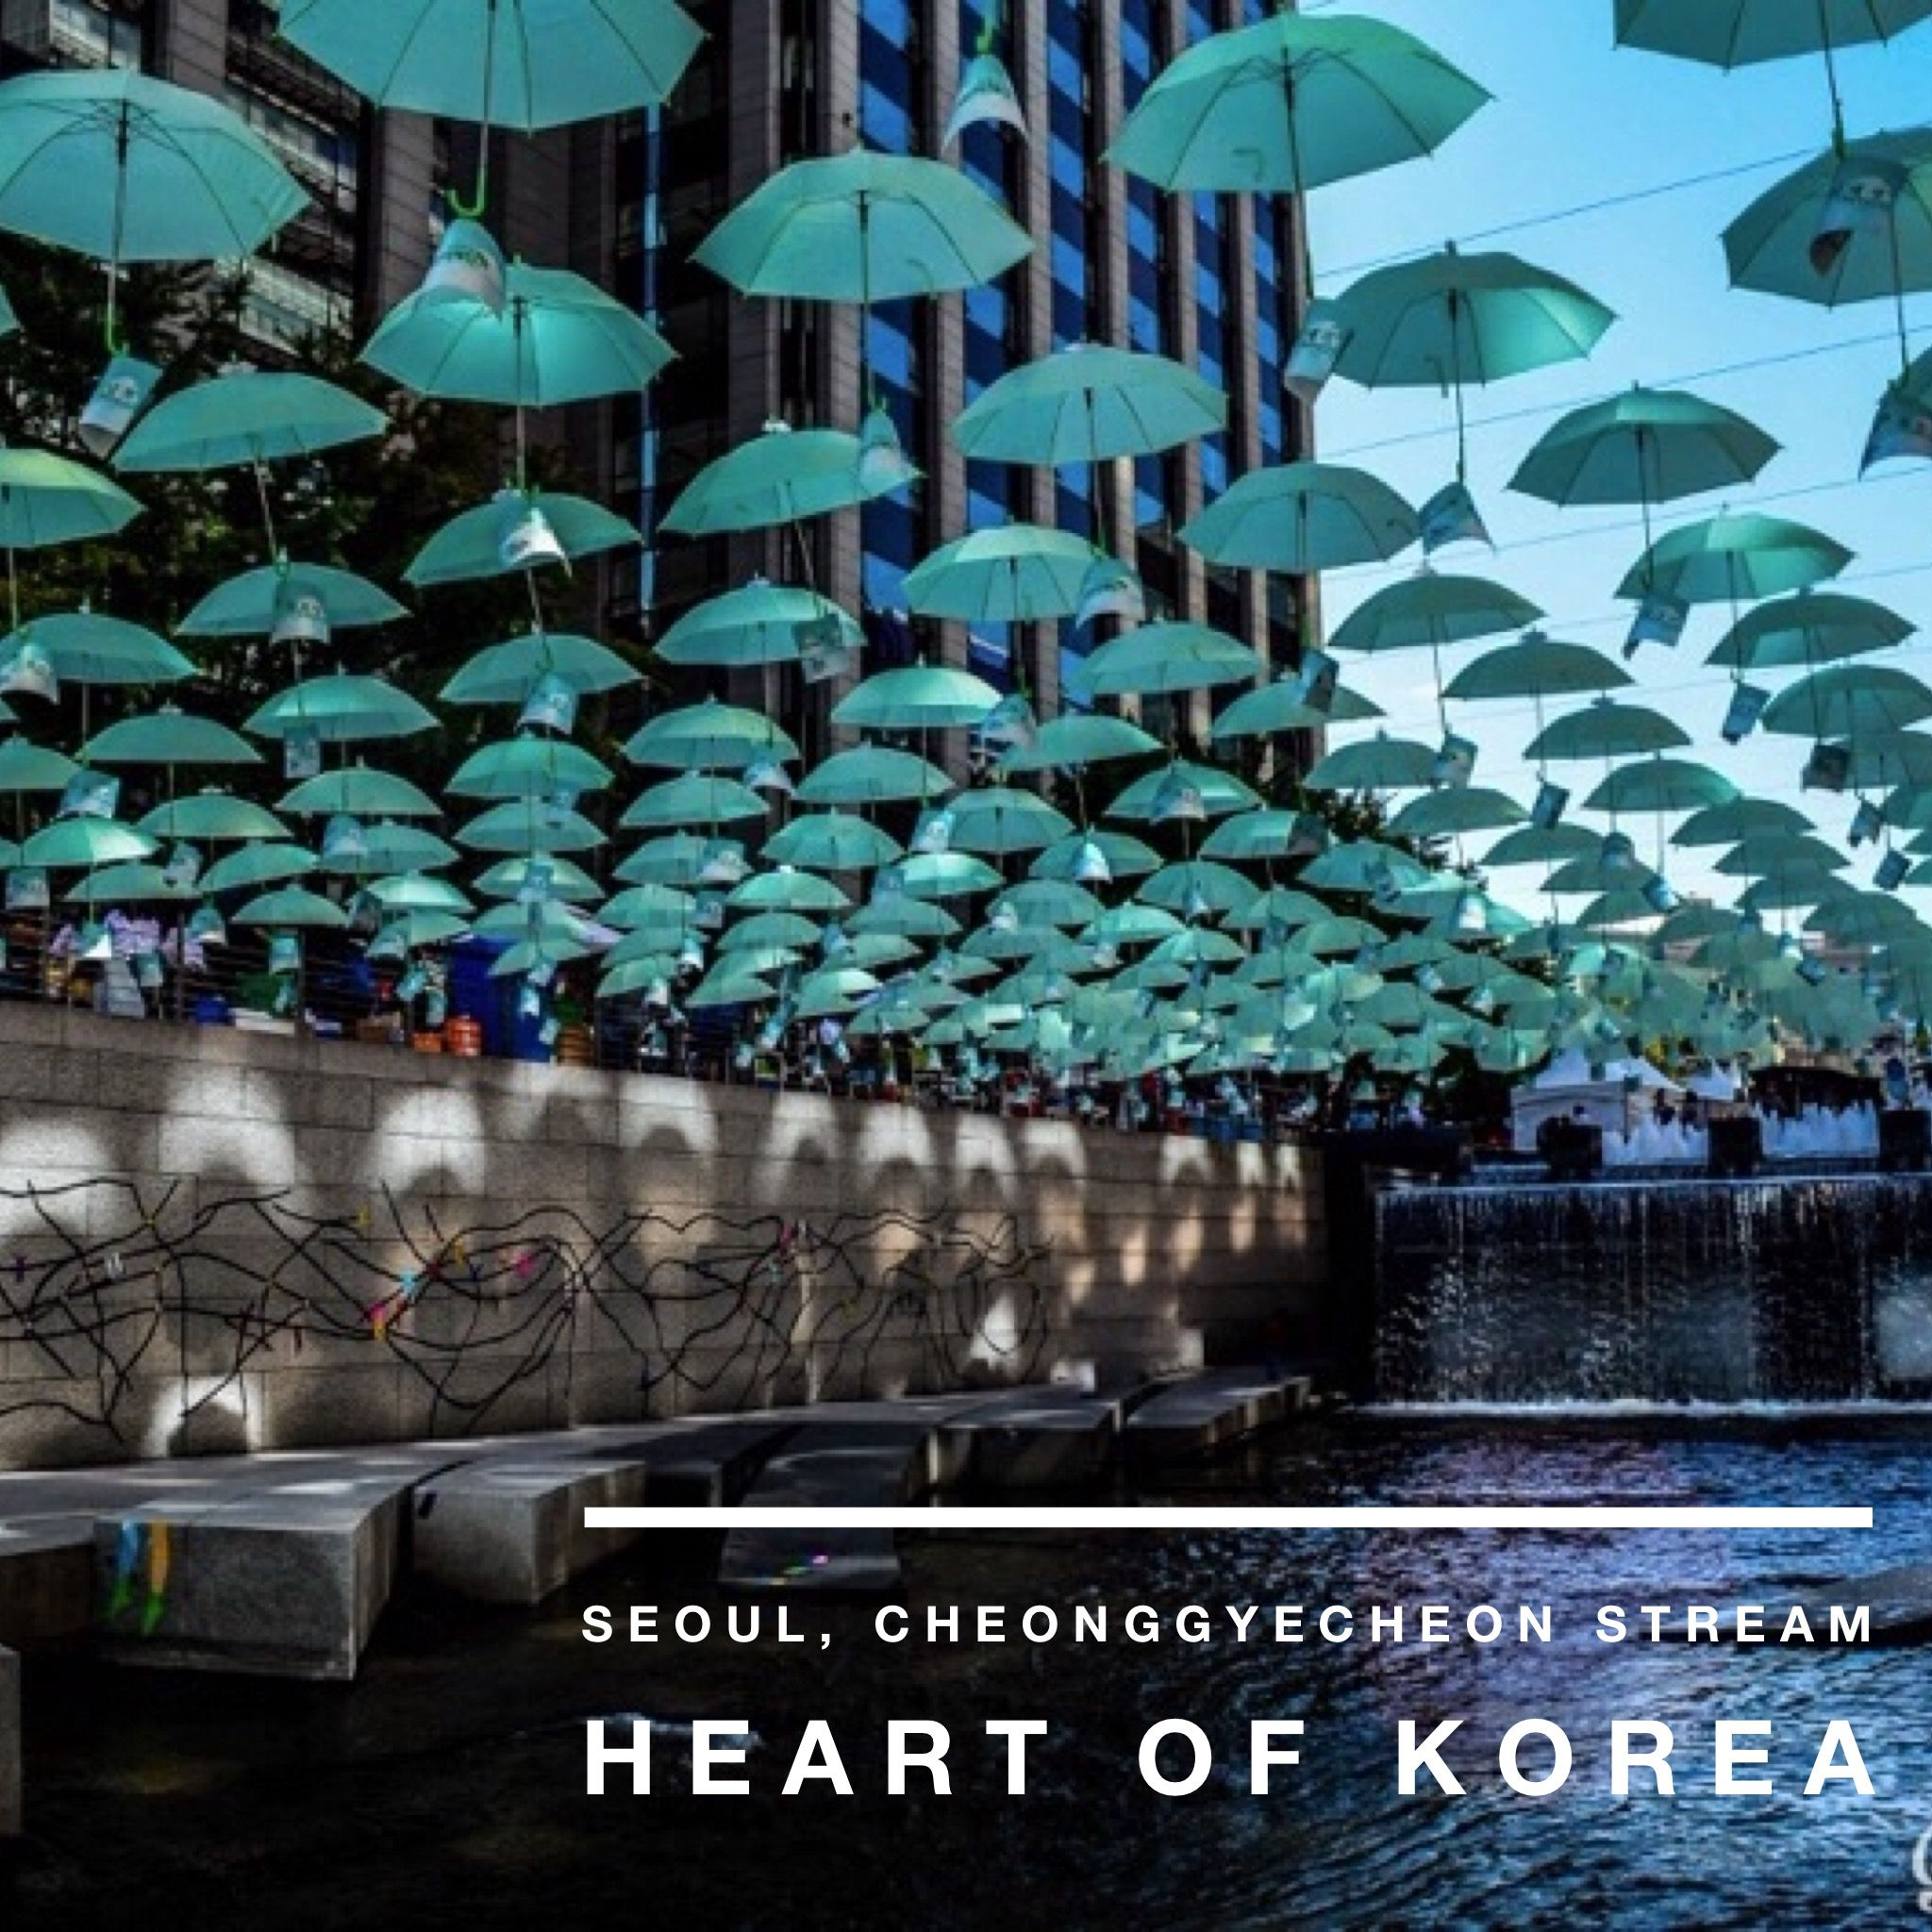 Seoul, Cheonggyecheon Stream - Heart of Korea